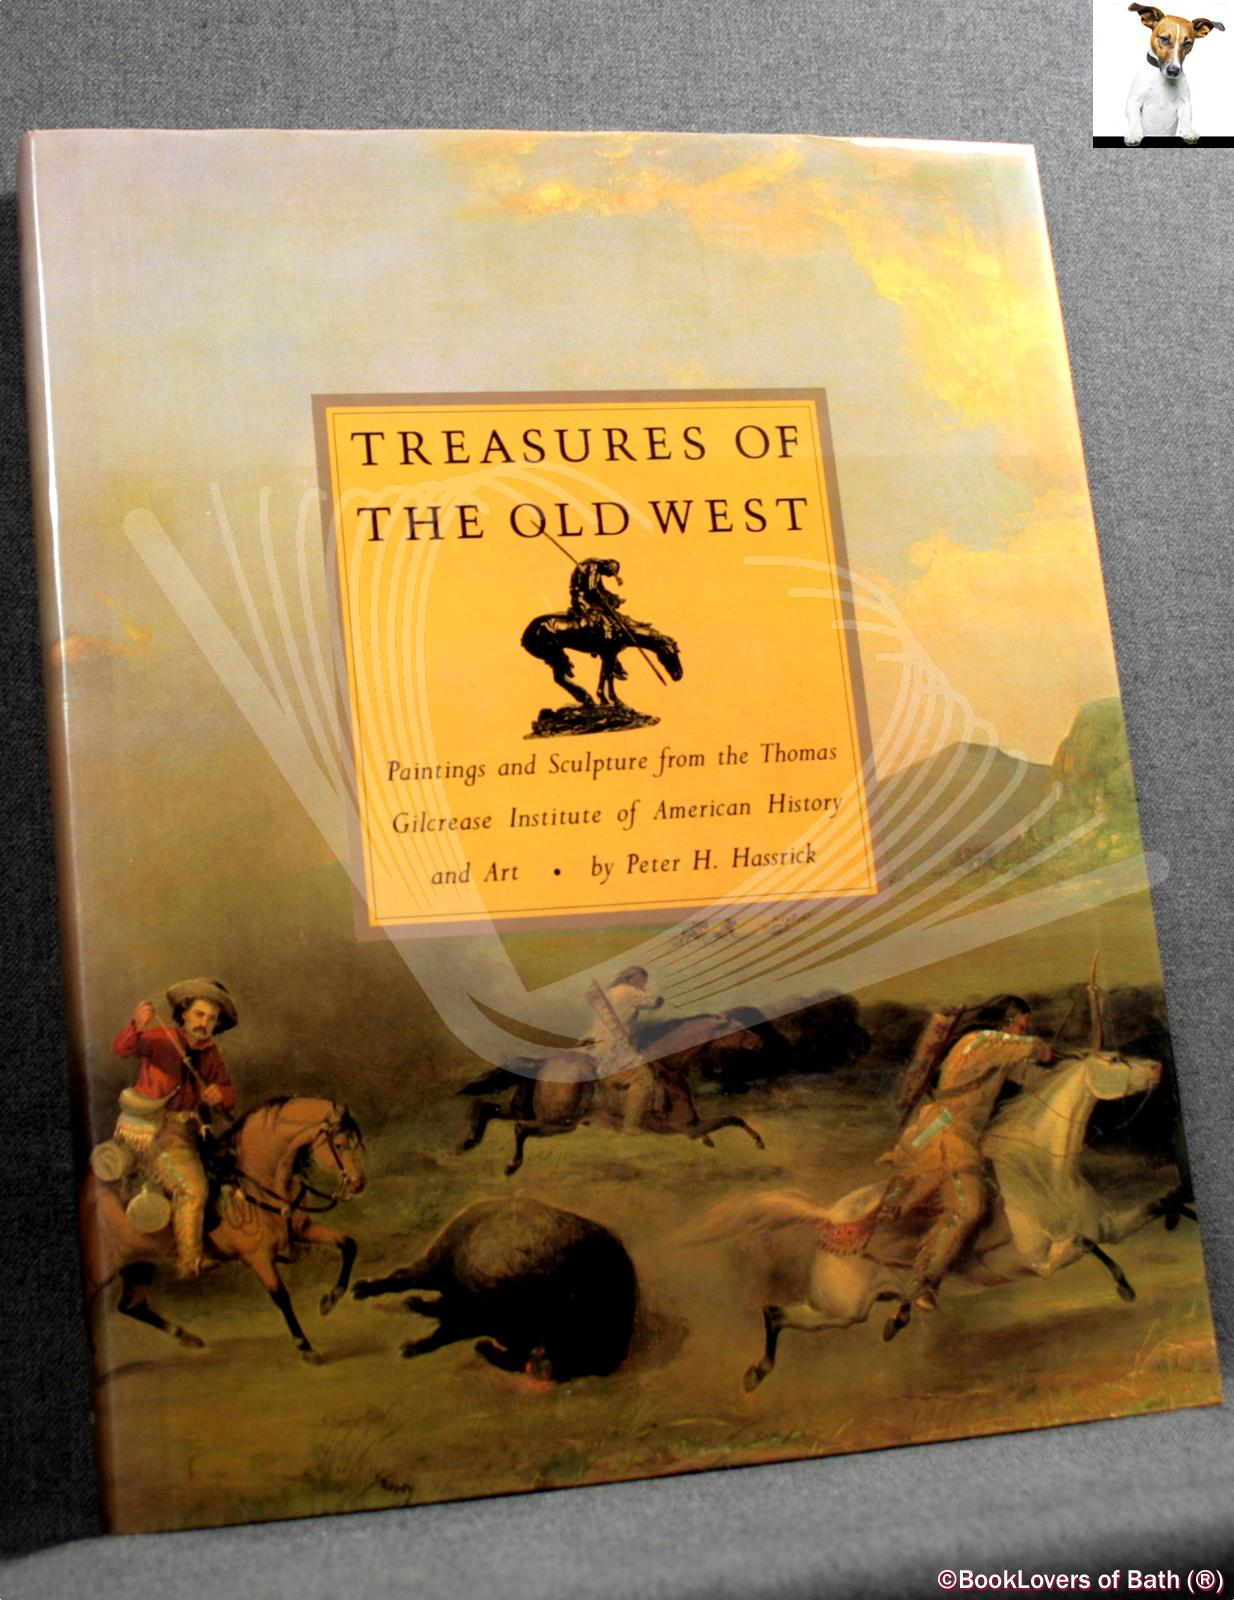 Treasures of the Old West: Paintings and Sculpture from the Thomas Gilcrease Institute of American History and Art Exhibition Organised by Denver Art Museum - Peter H. Hassrick